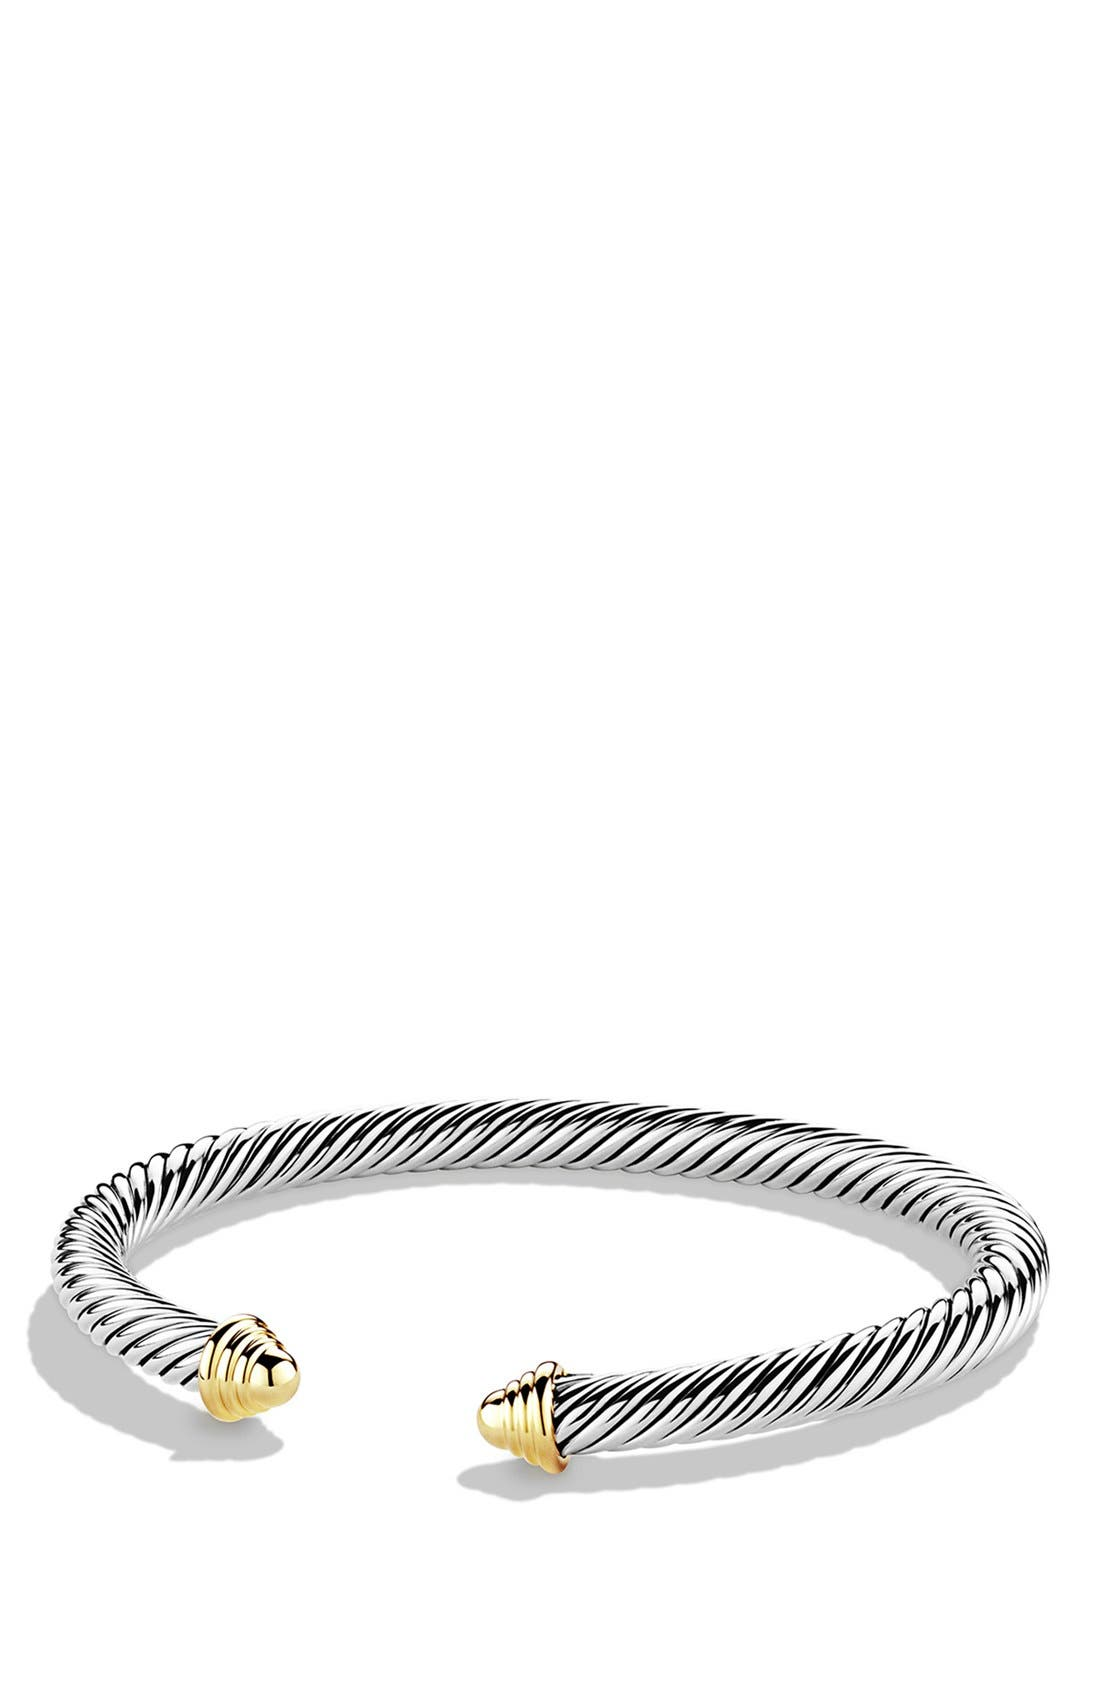 Alternate Image 1 Selected - David Yurman 'Cable Classics' Bracelet